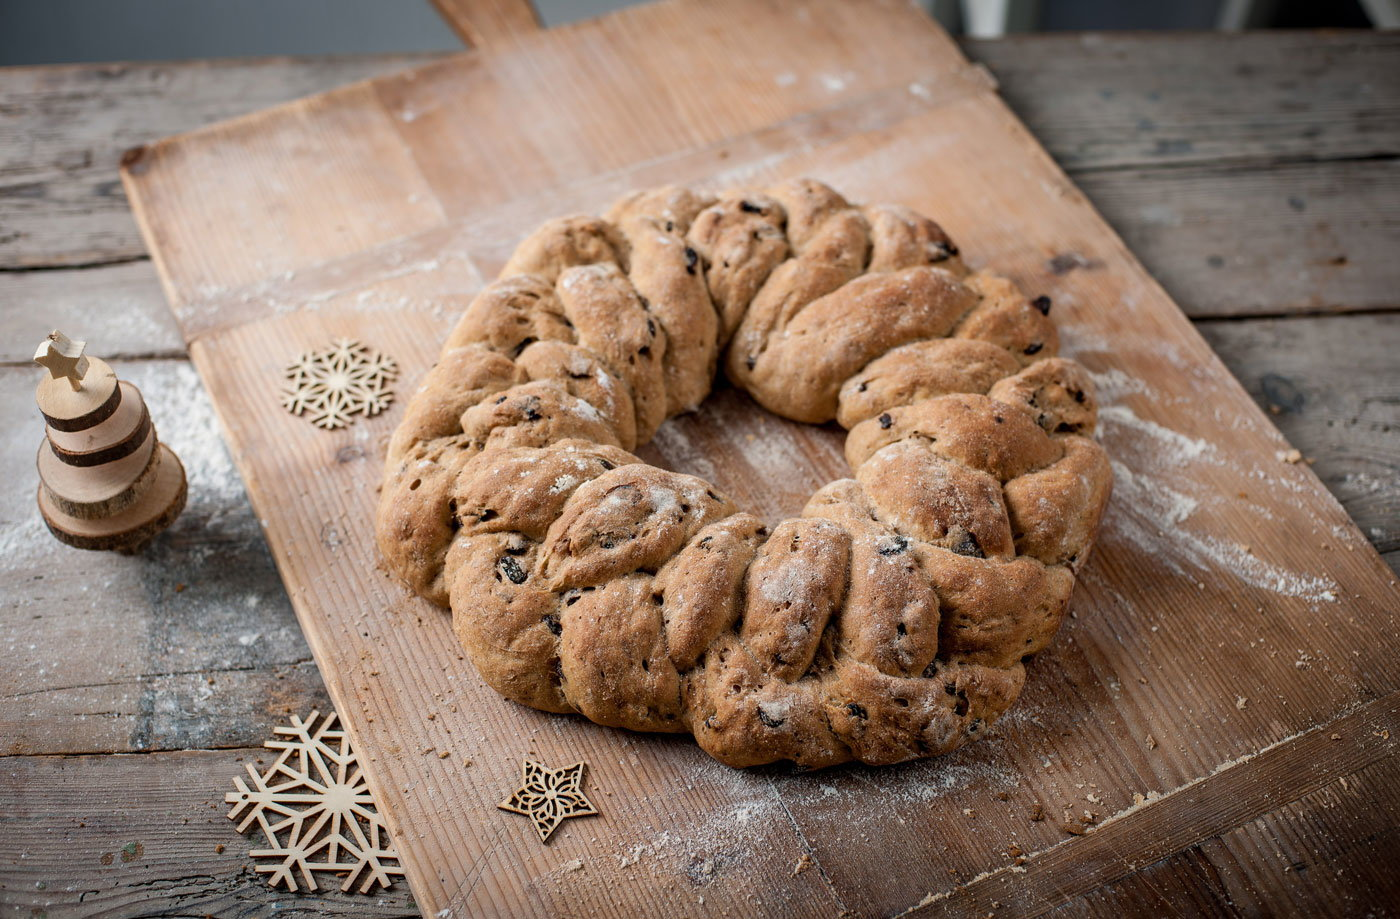 Andrew MacKenzie's festive plaited loaf recipe